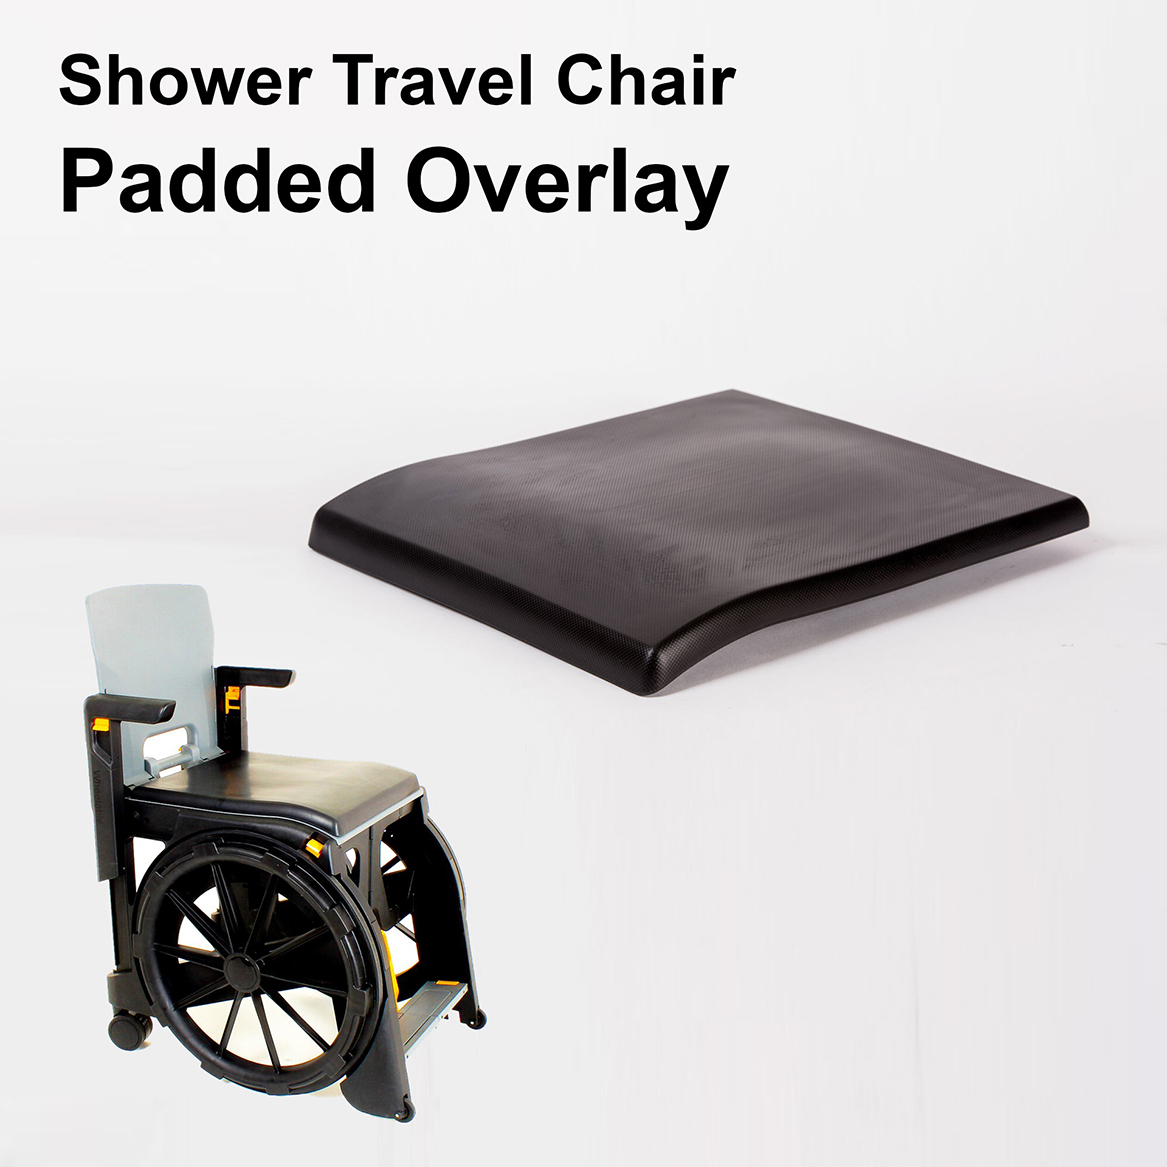 Shower Travel Chair | Michigan USA The Shower Travel Chair